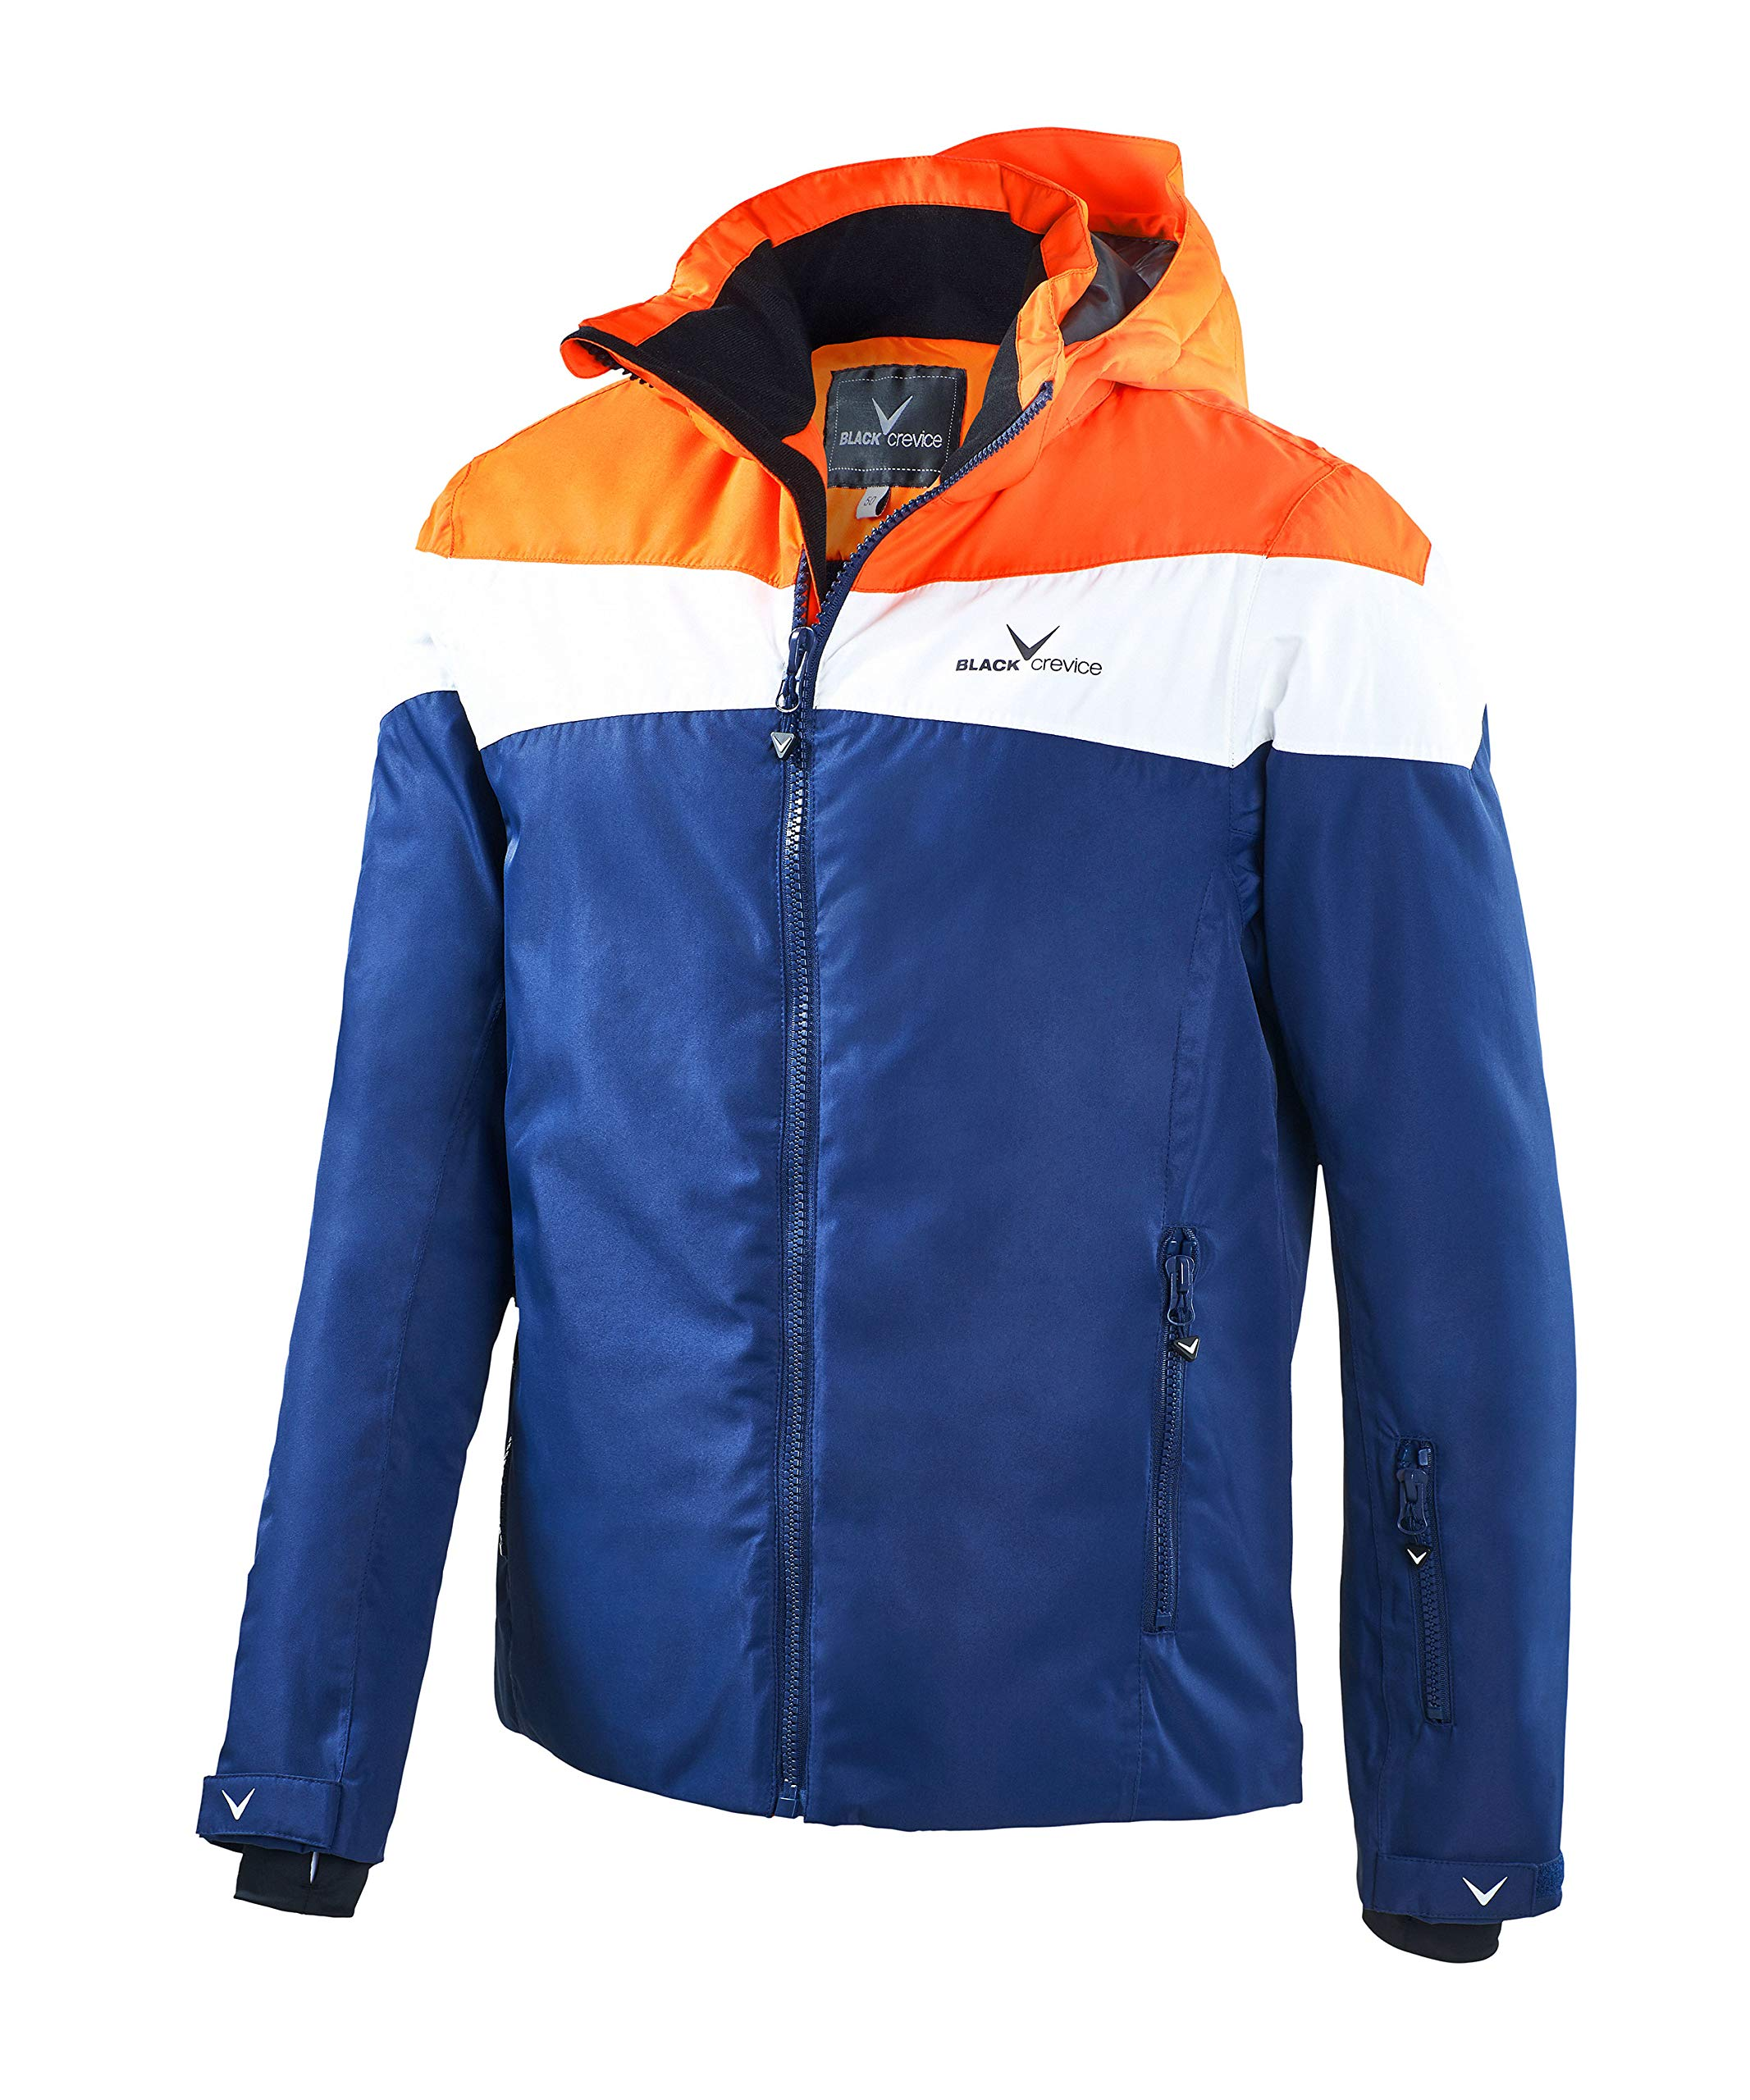 Black Crevice Herren Crevice Skijacke, Orange/White/Navy, 56